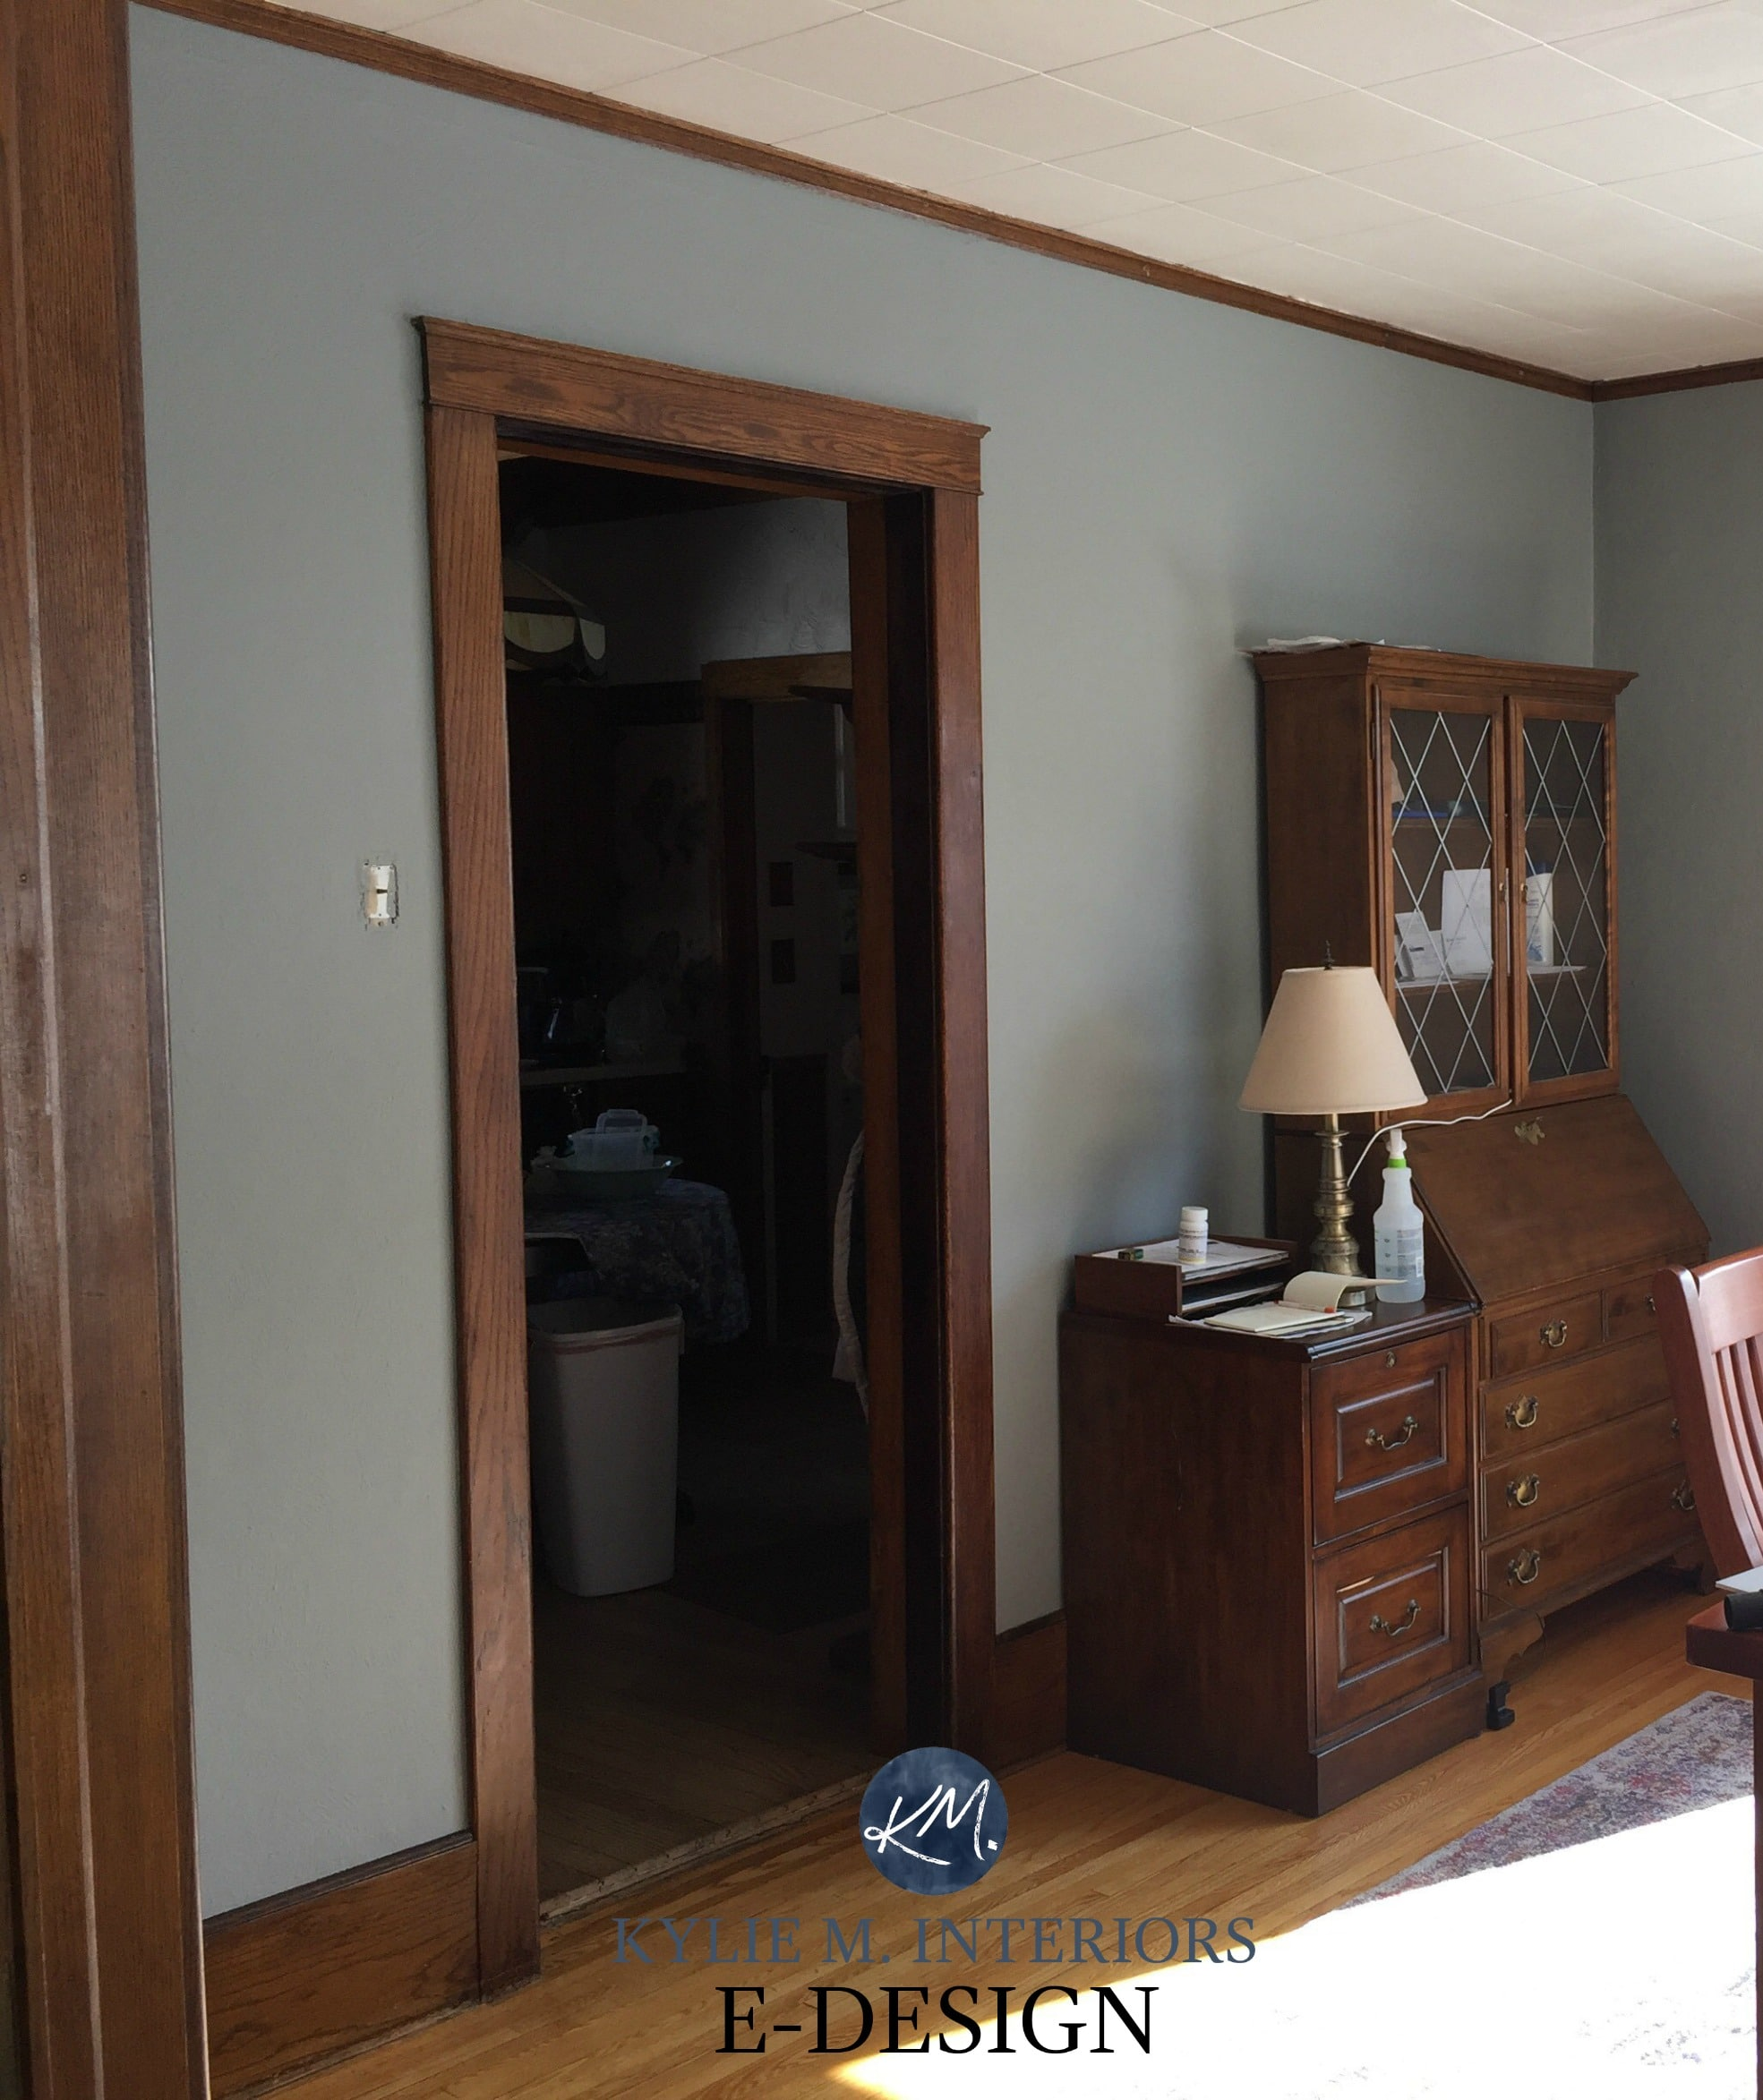 Best paint colour for dark wood trim. Sherwin Williams Tin Lizze. Kylie M Interiors E-design paint colour consultant and expert & Best paint colour for dark wood trim. Sherwin Williams Tin Lizze ...